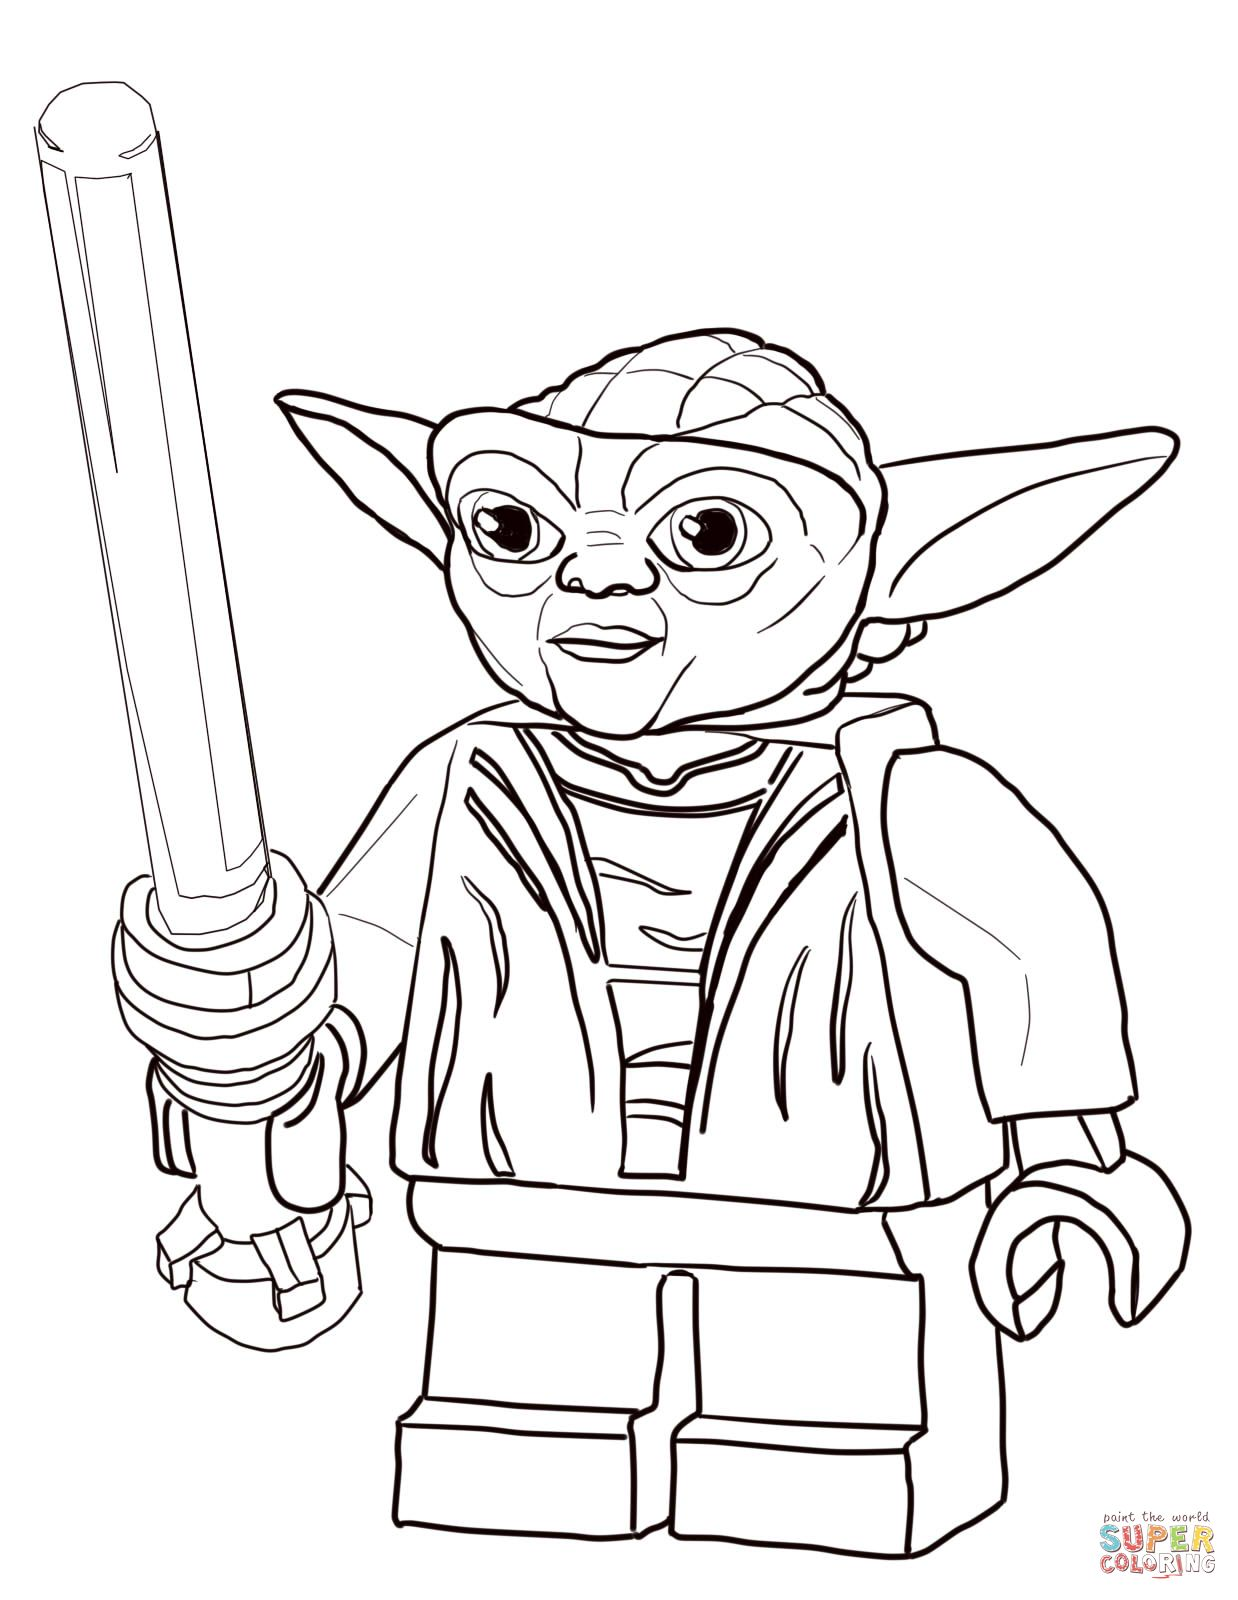 Lego Star Wars Yoda Coloring Pages Lego star wars master yoda ...